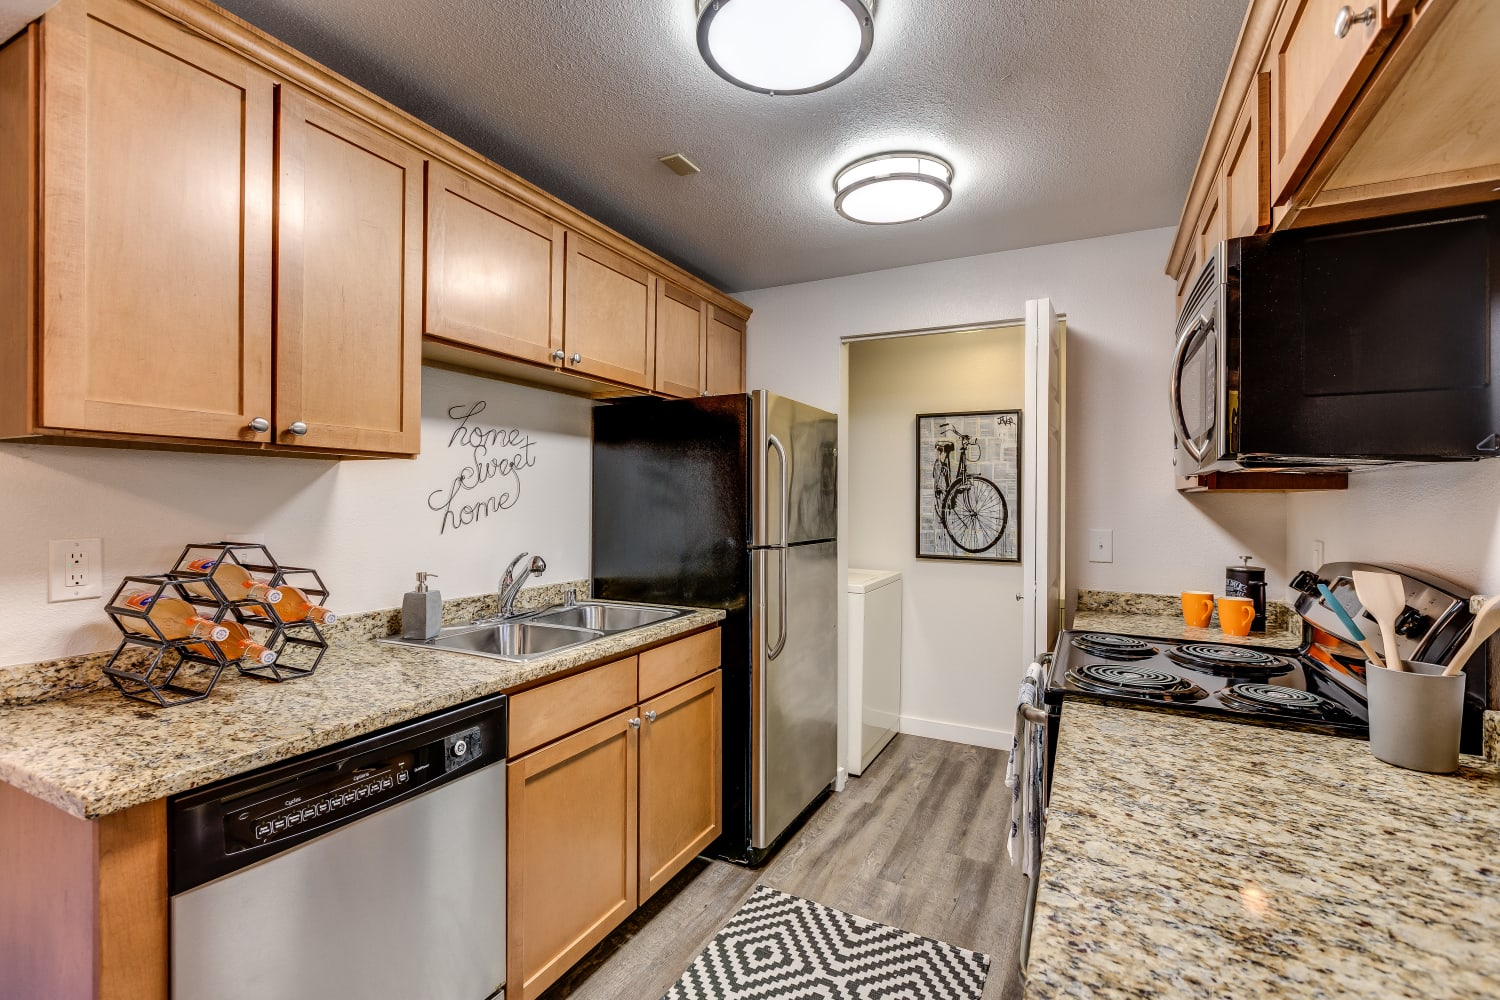 Clean and modern kitchen at The Preserve at Forbes Creek in Kirkland, Washington